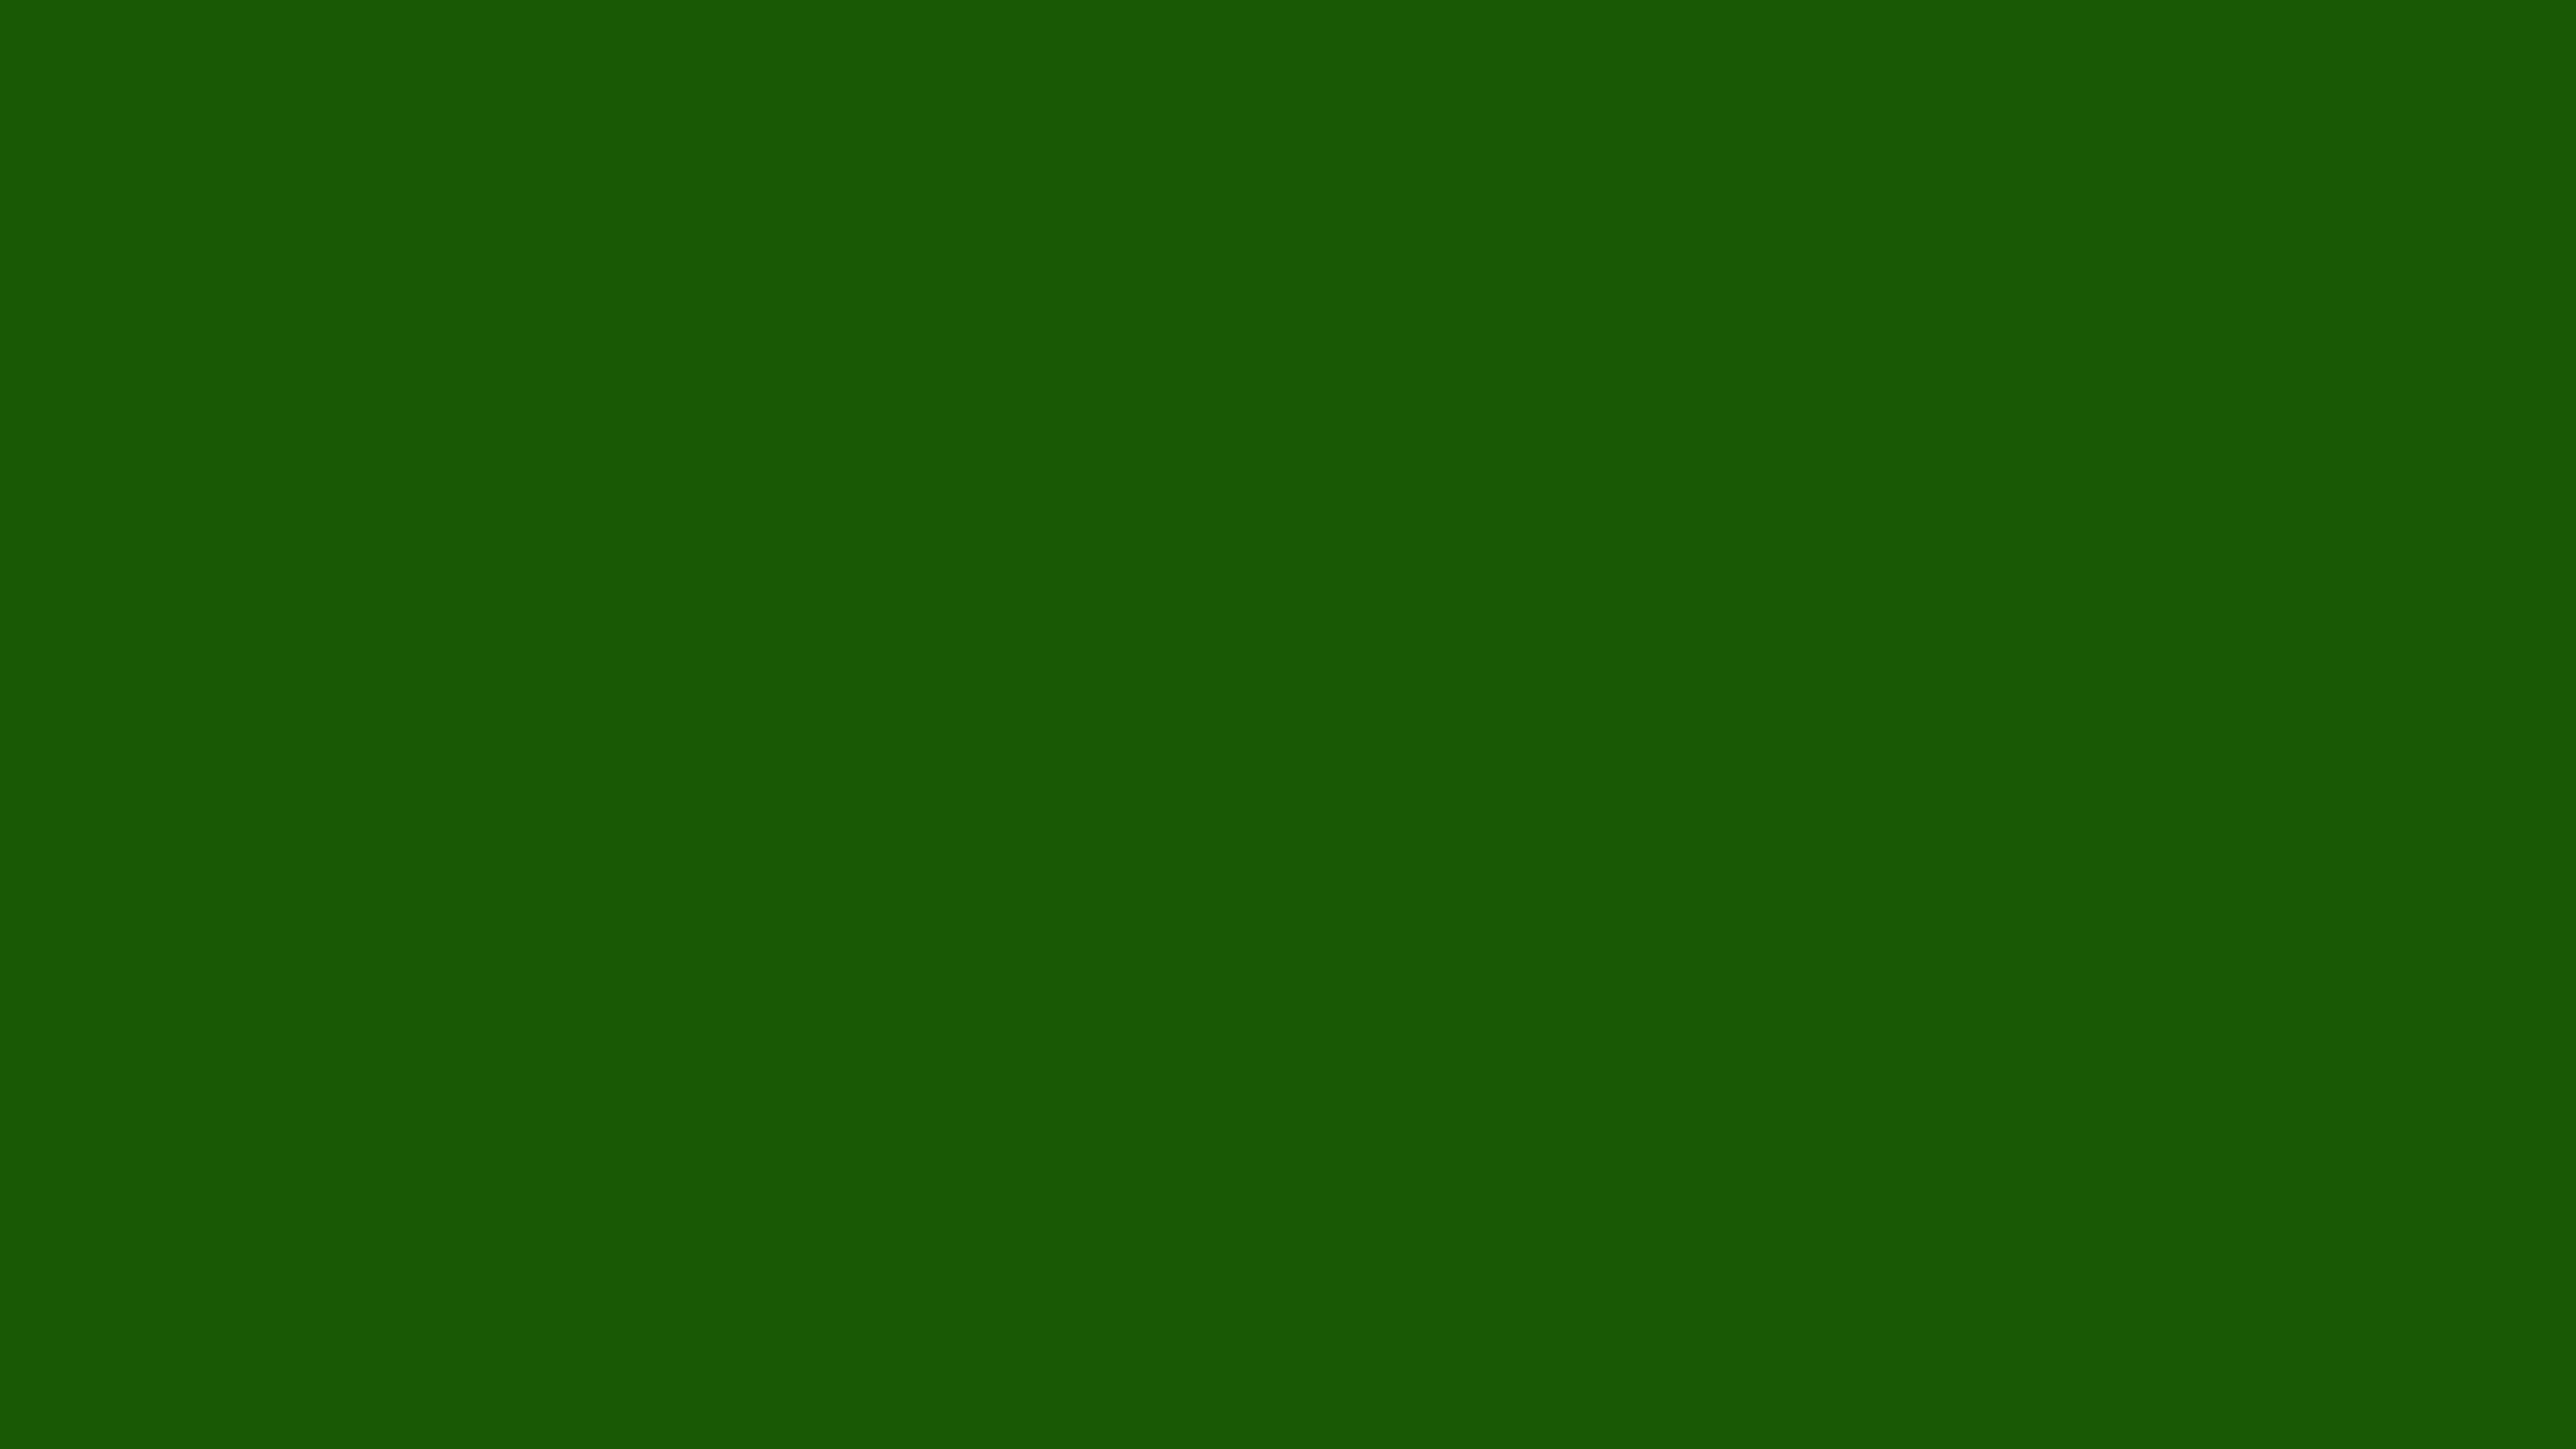 5120x2880 Lincoln Green Solid Color Background